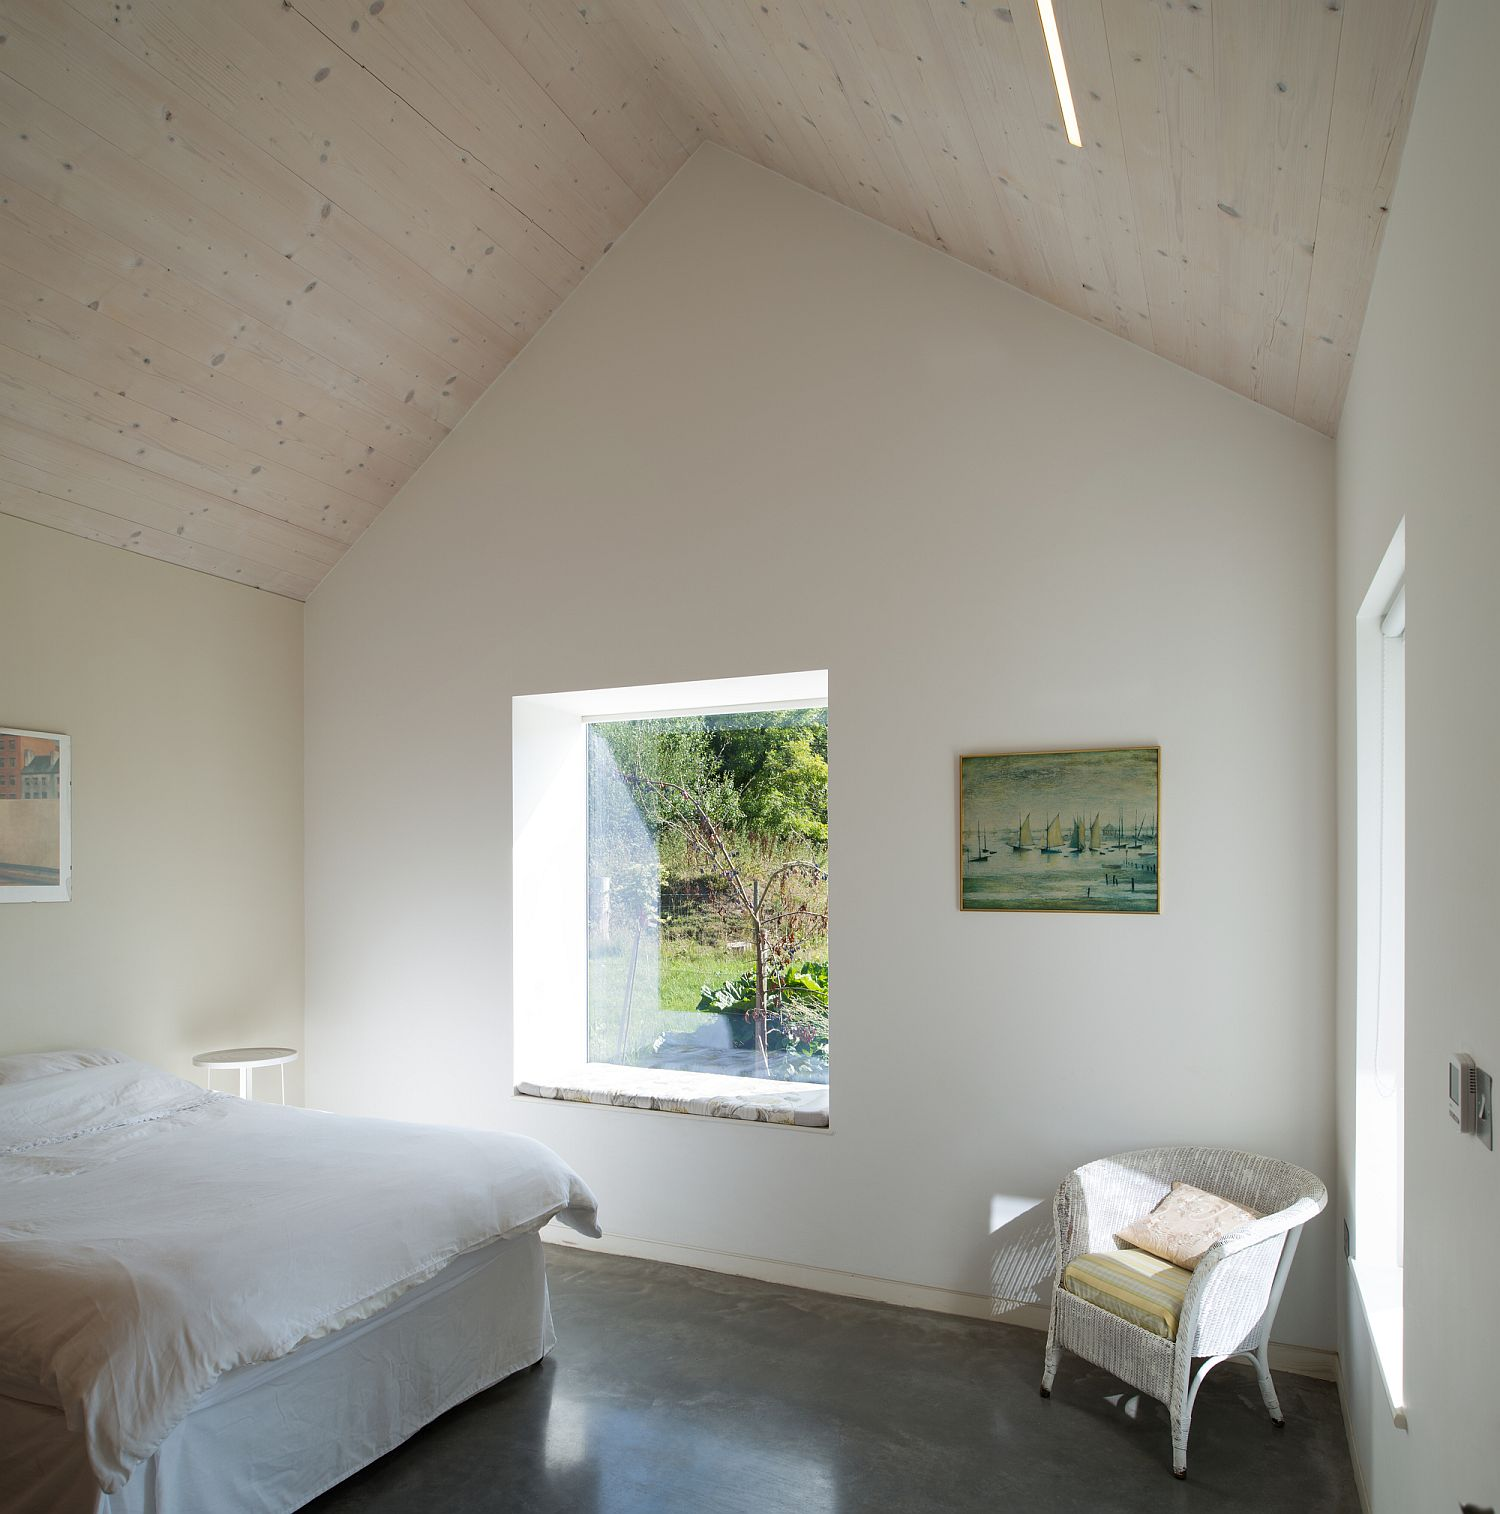 Clever-use-of-windows-throughout-the-house-brings-in-ample-natural-light